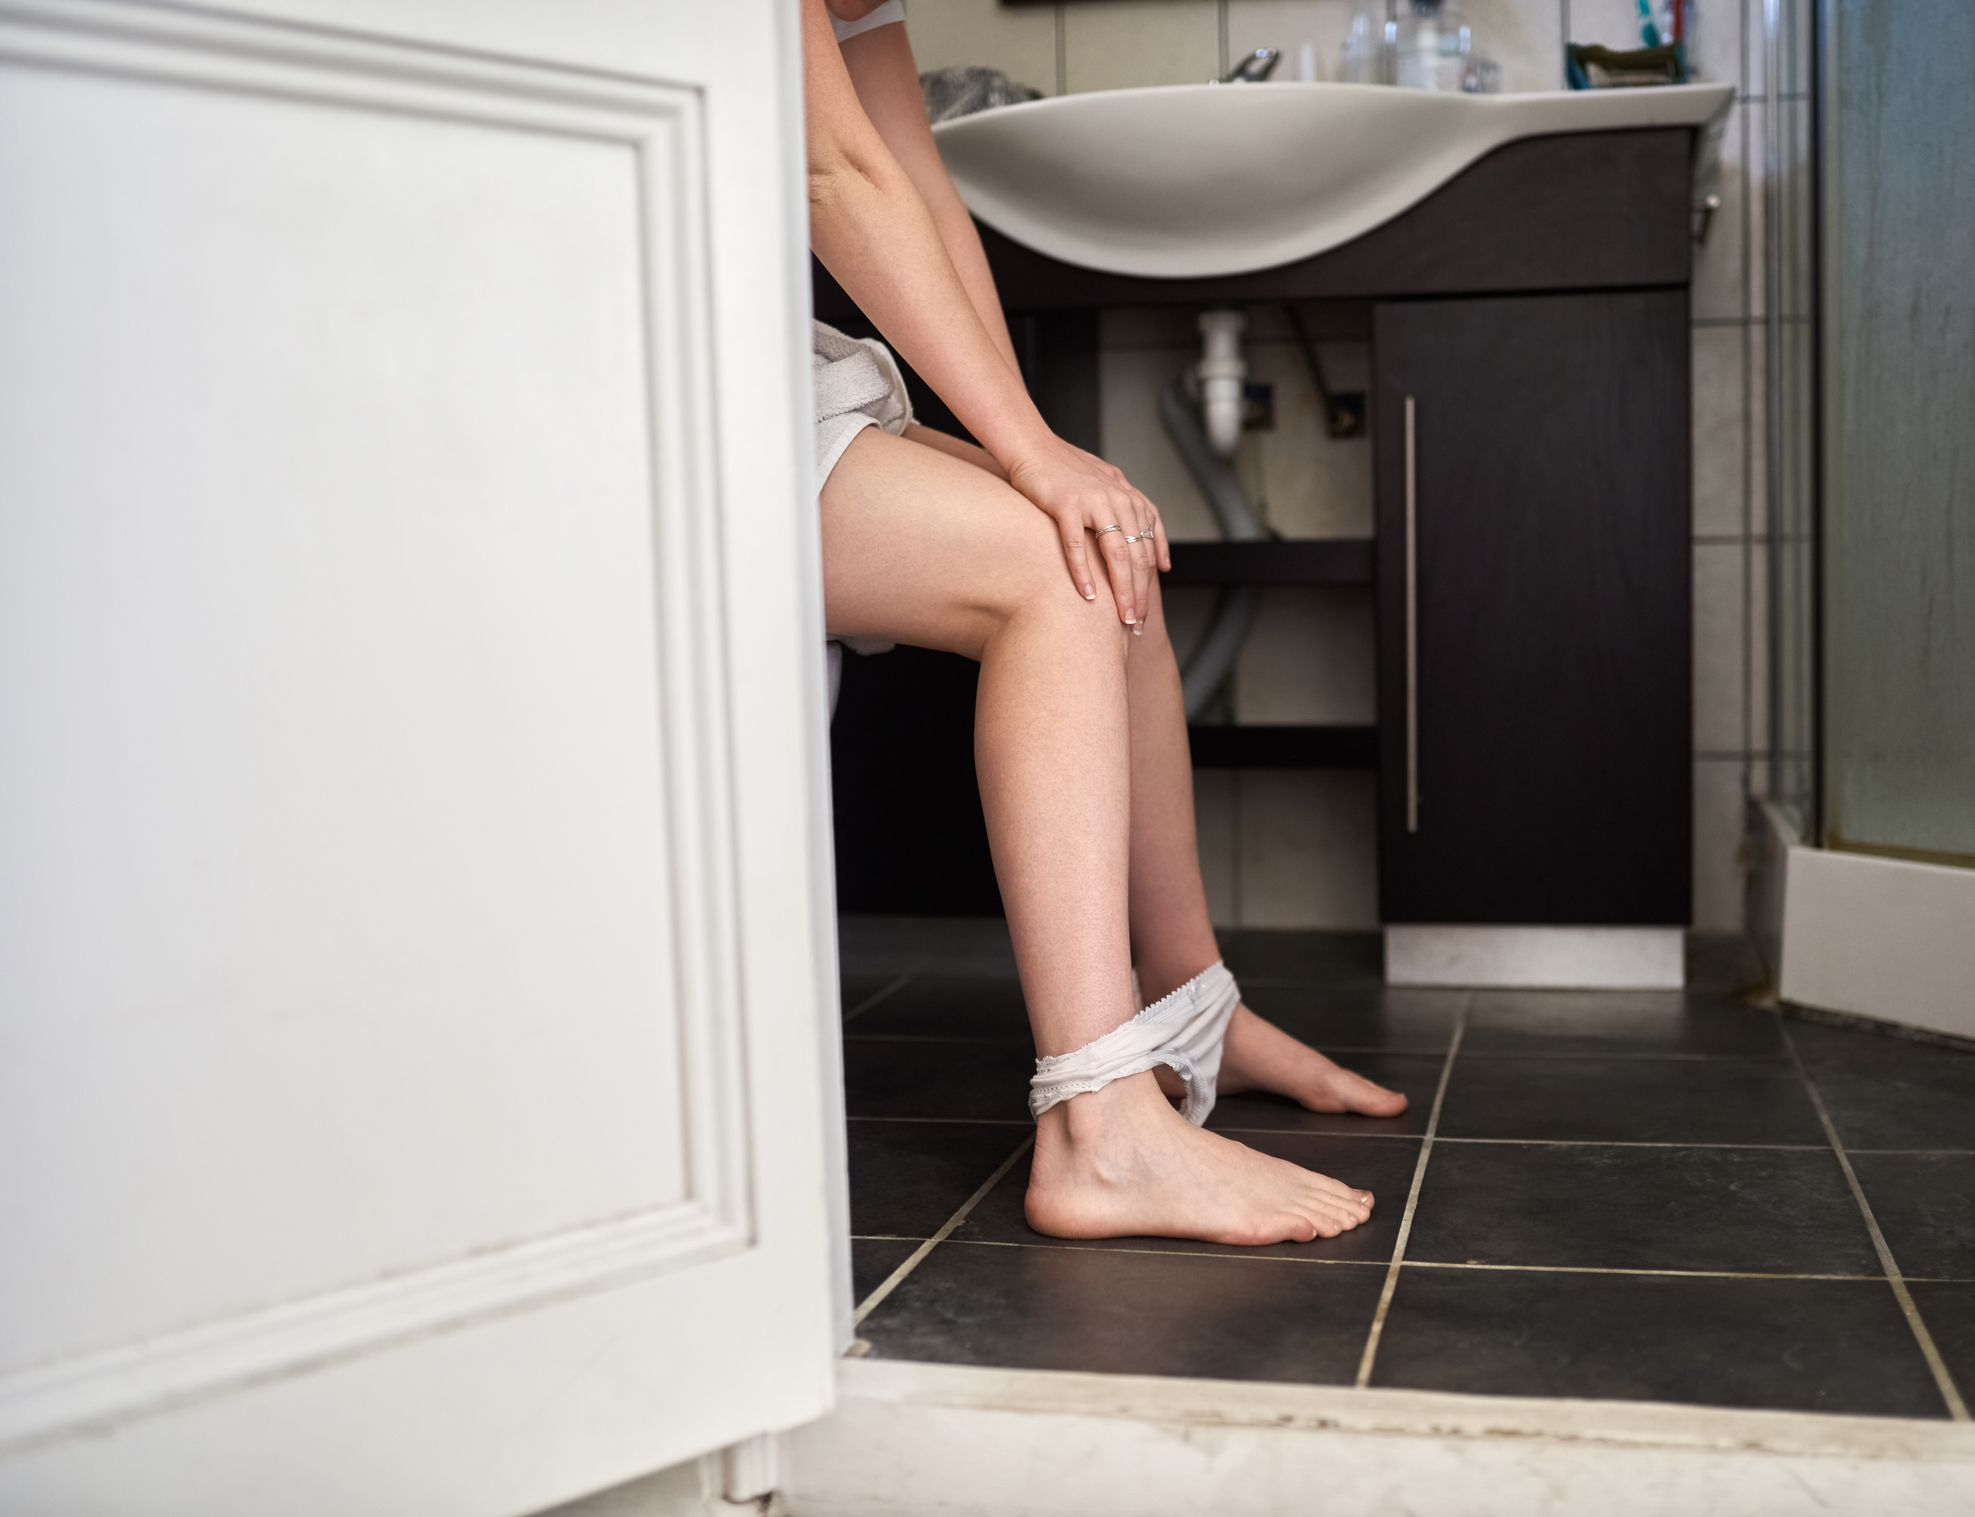 Is it normal to need to pee all the time?